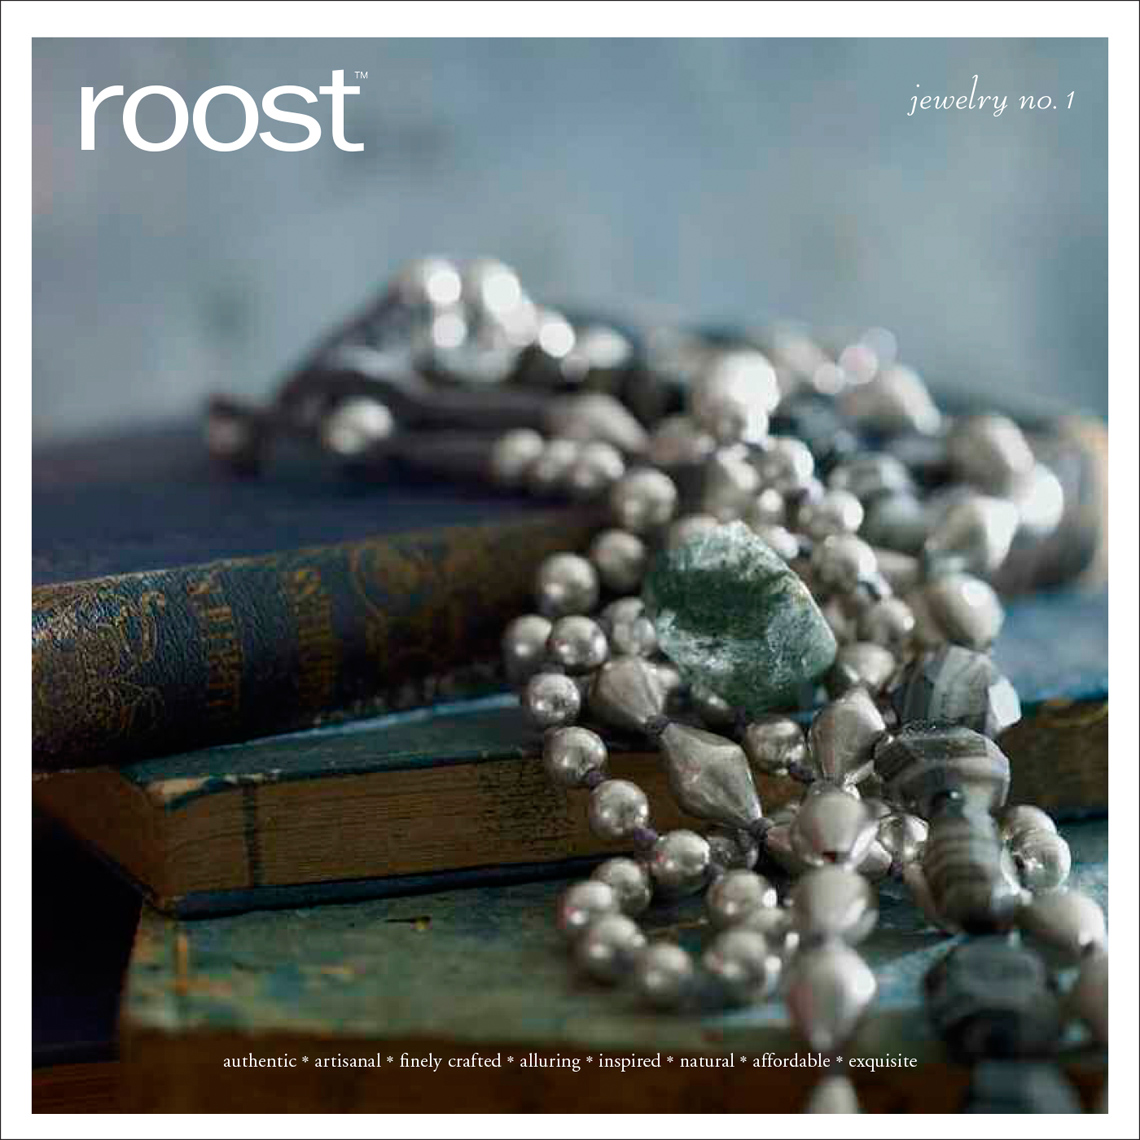 Advertising: Roost, Cover